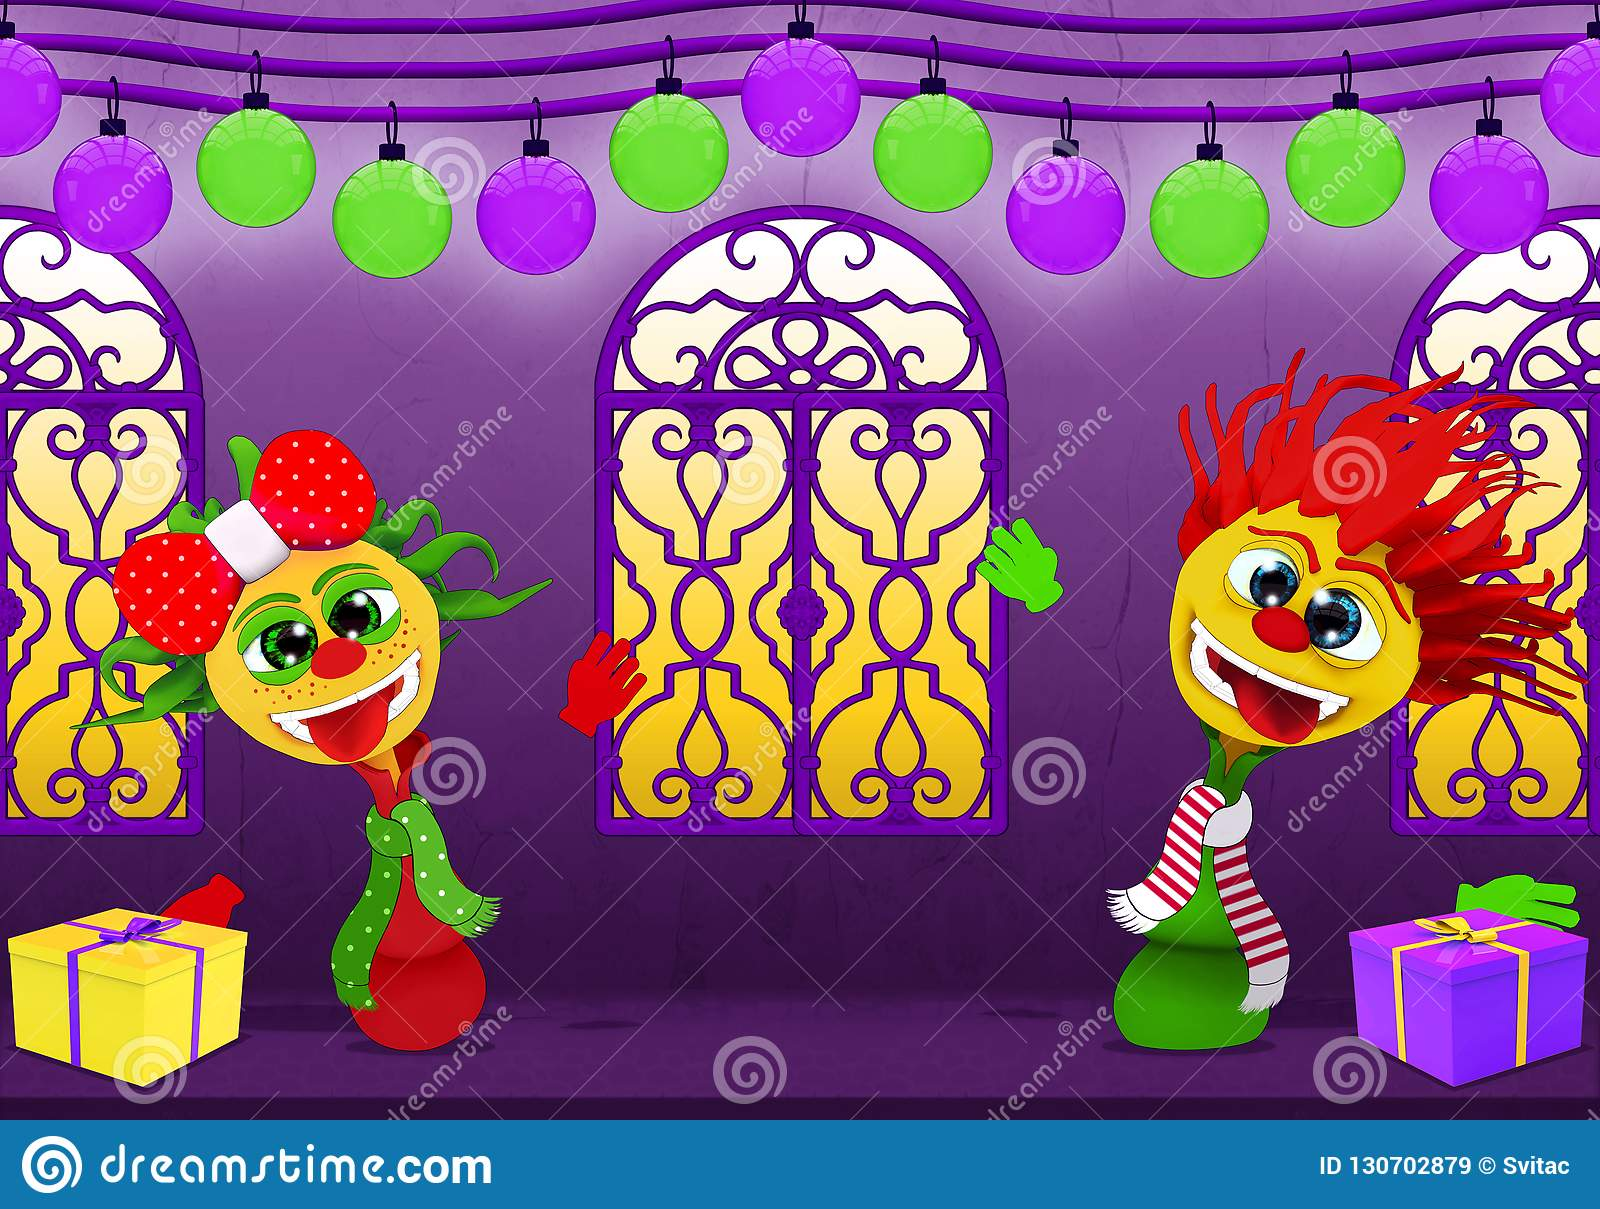 happy new year in purple and yellow cartoony boy and girl